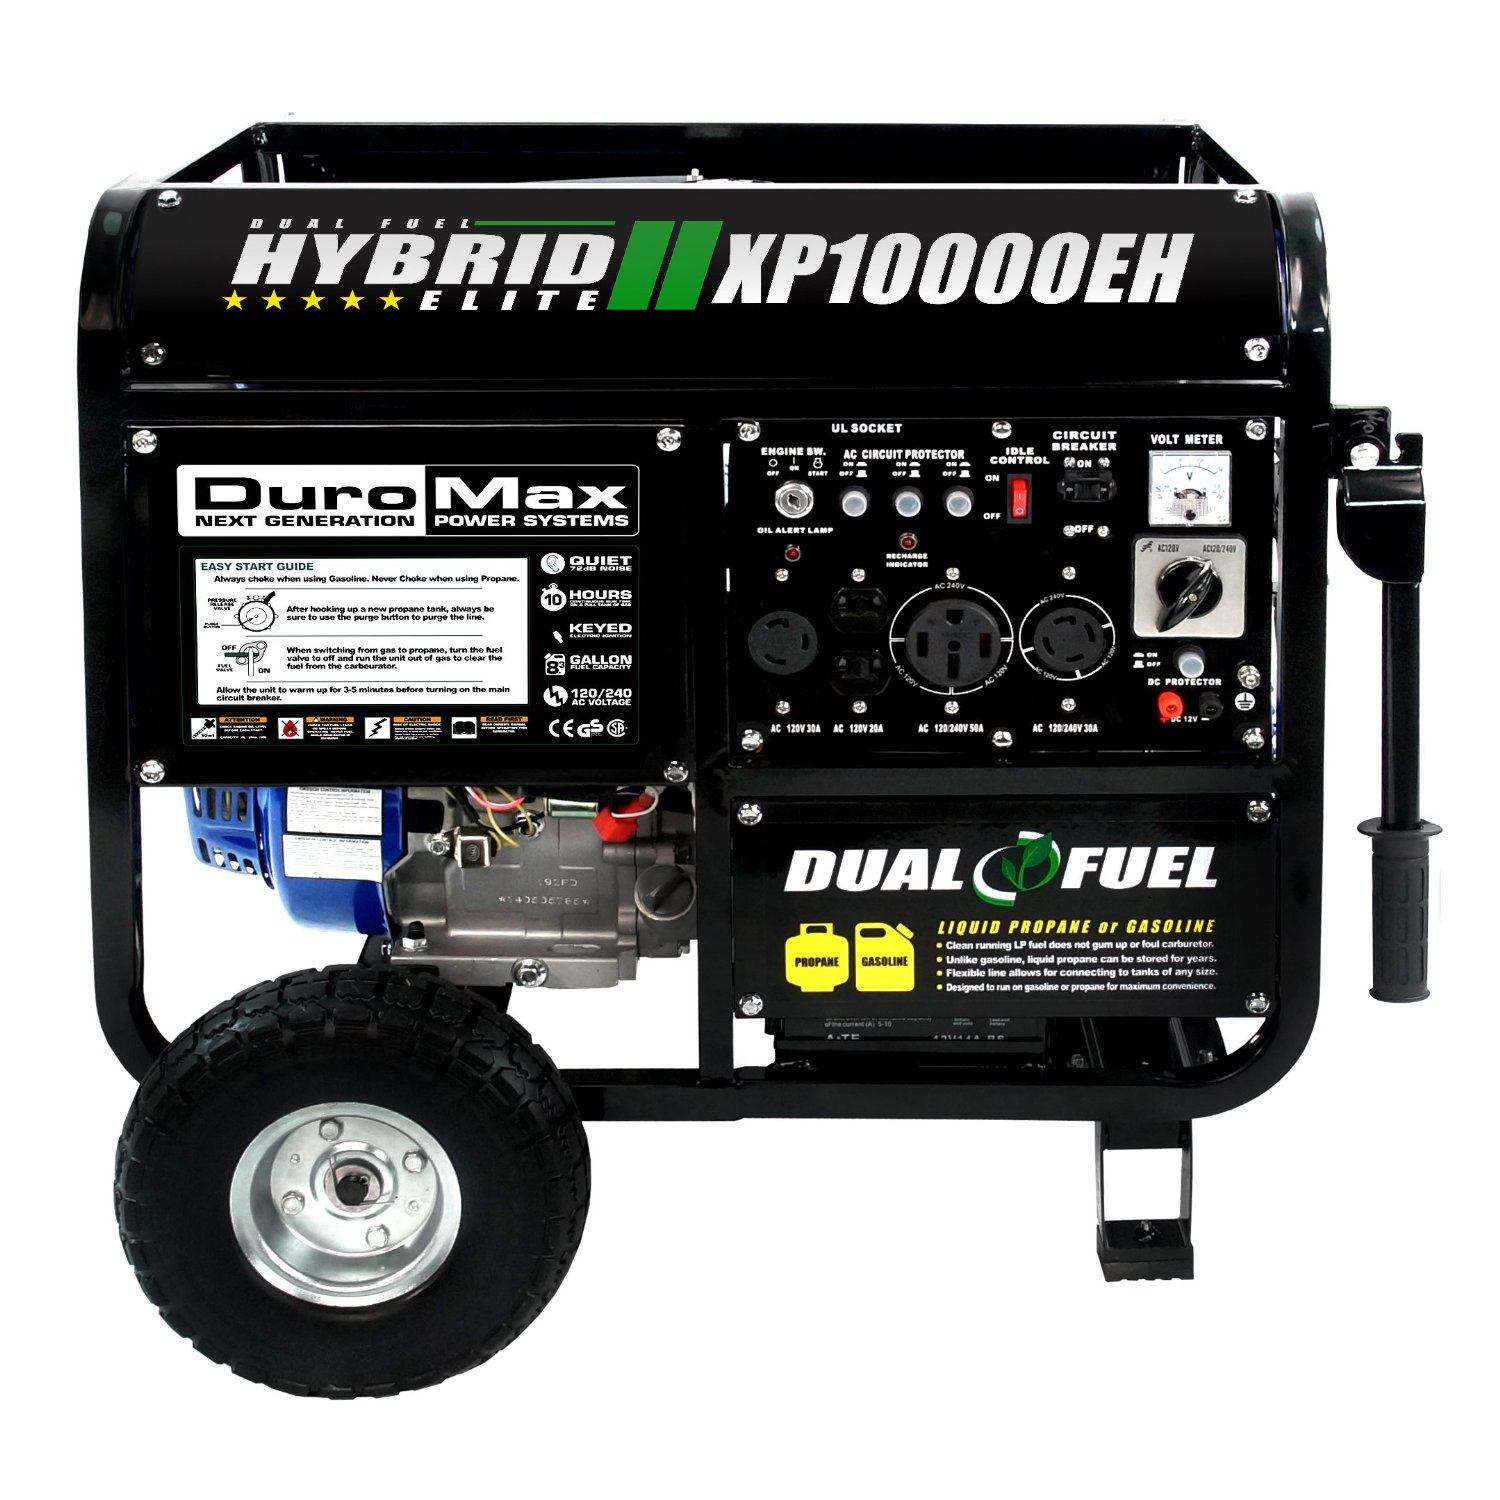 DuroMax Hybrid Dual Fuel Portable Gas Propane Generator Review